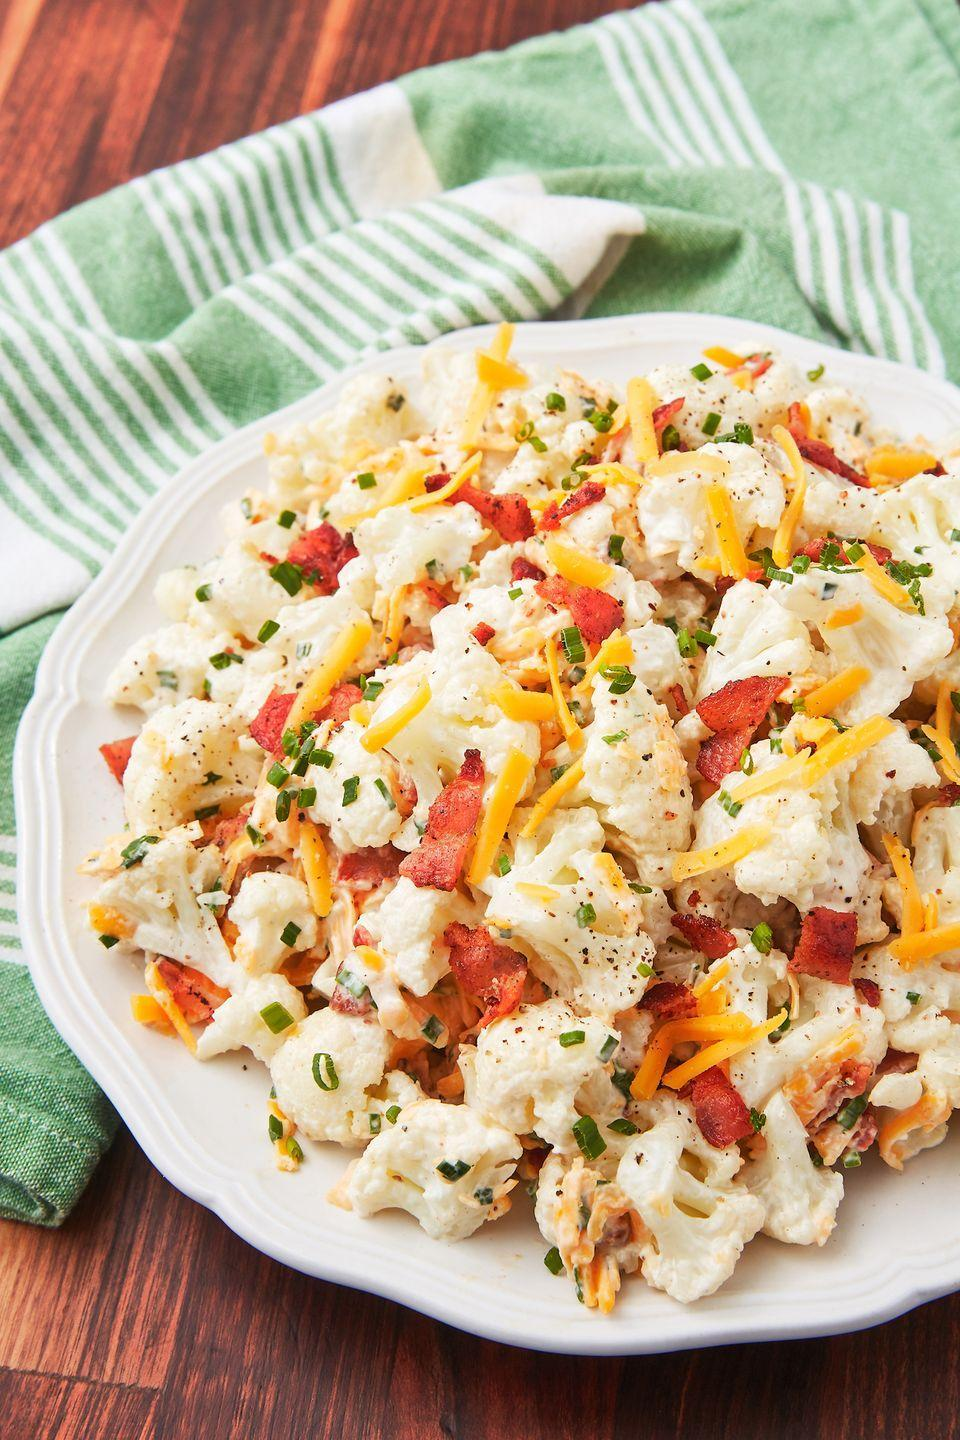 """<p>This is our first time making fauxtato salad with lots of bacon and cheese. And guess what? We have zero regrets about it. </p><p>Get the recipe from <a href=""""https://www.delish.com/cooking/recipe-ideas/a22128352/loaded-cauliflower-salad-recipe/"""" rel=""""nofollow noopener"""" target=""""_blank"""" data-ylk=""""slk:Delish"""" class=""""link rapid-noclick-resp"""">Delish</a>.</p>"""